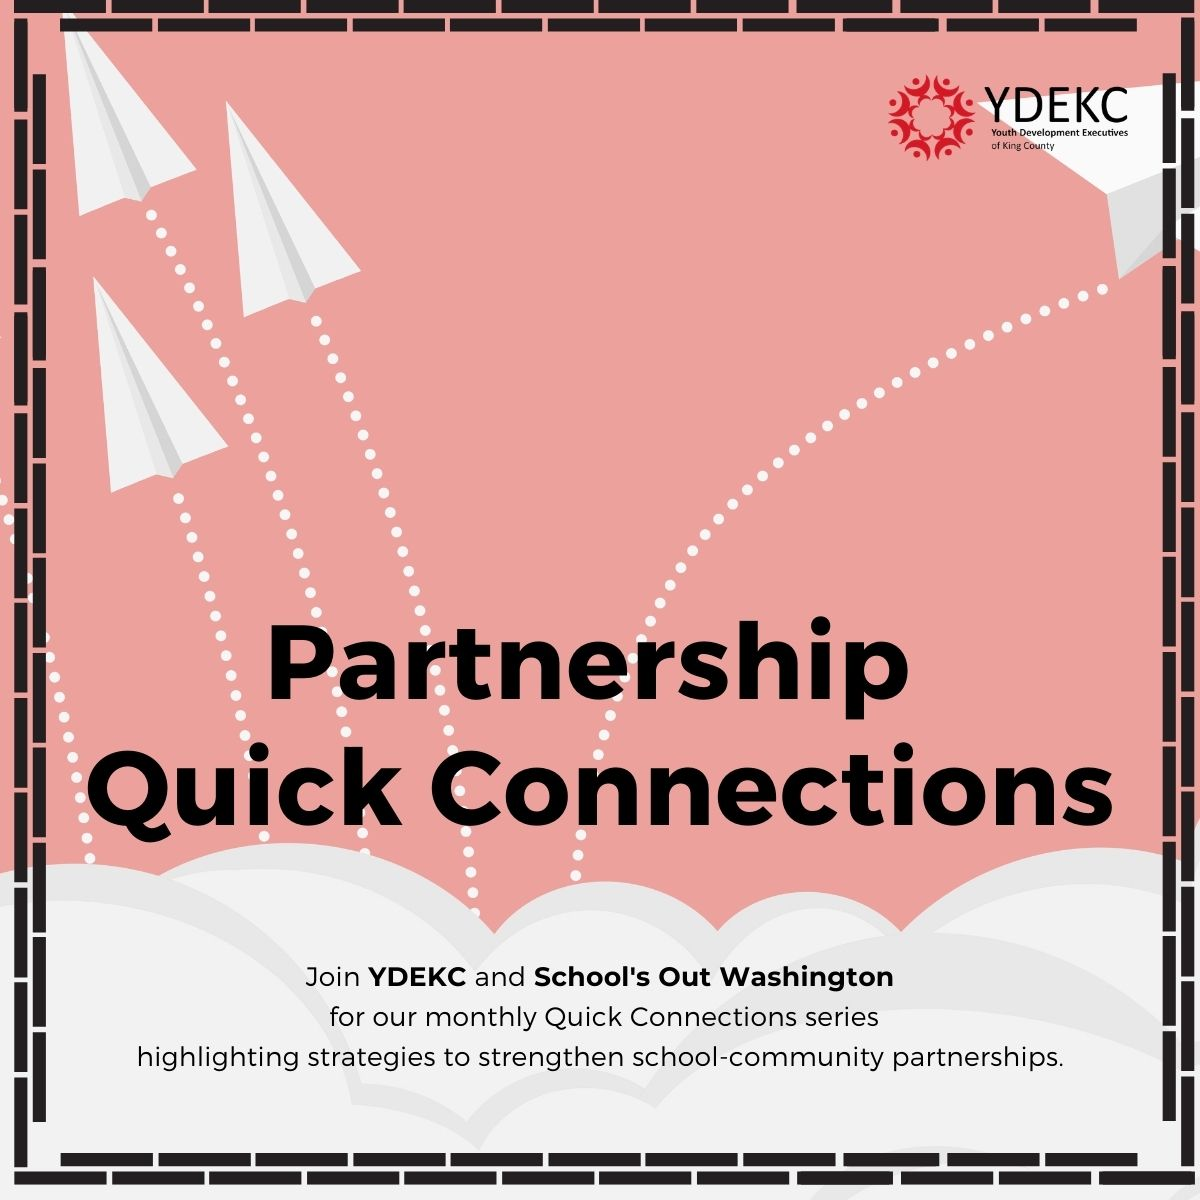 Partnership Quick Connections image